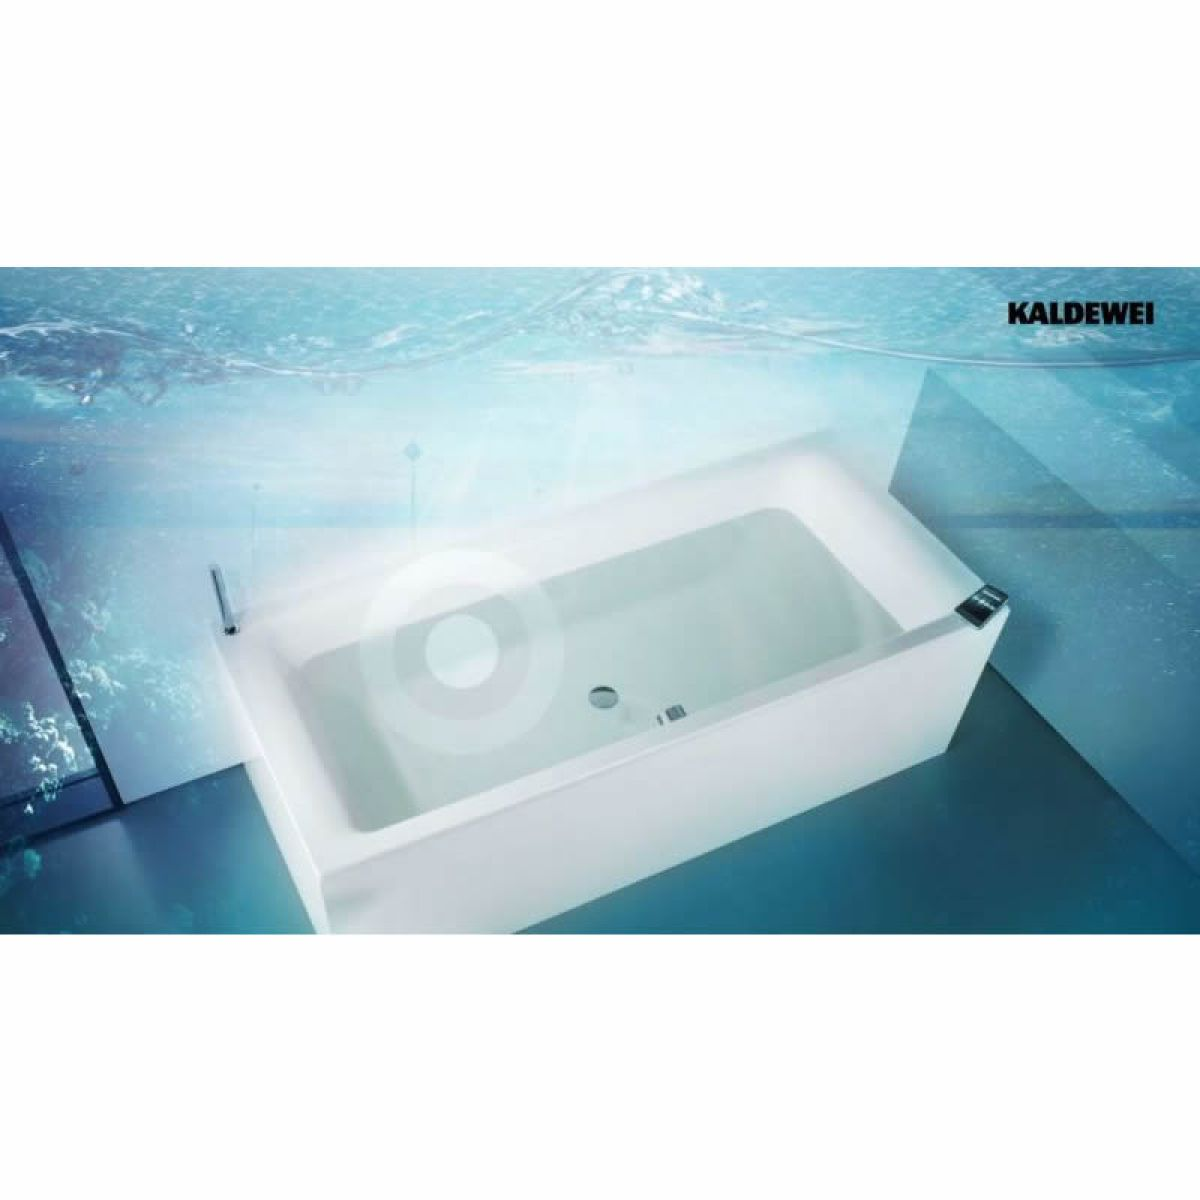 kaldewei soundwave sound system for baths uk bathrooms. Black Bedroom Furniture Sets. Home Design Ideas